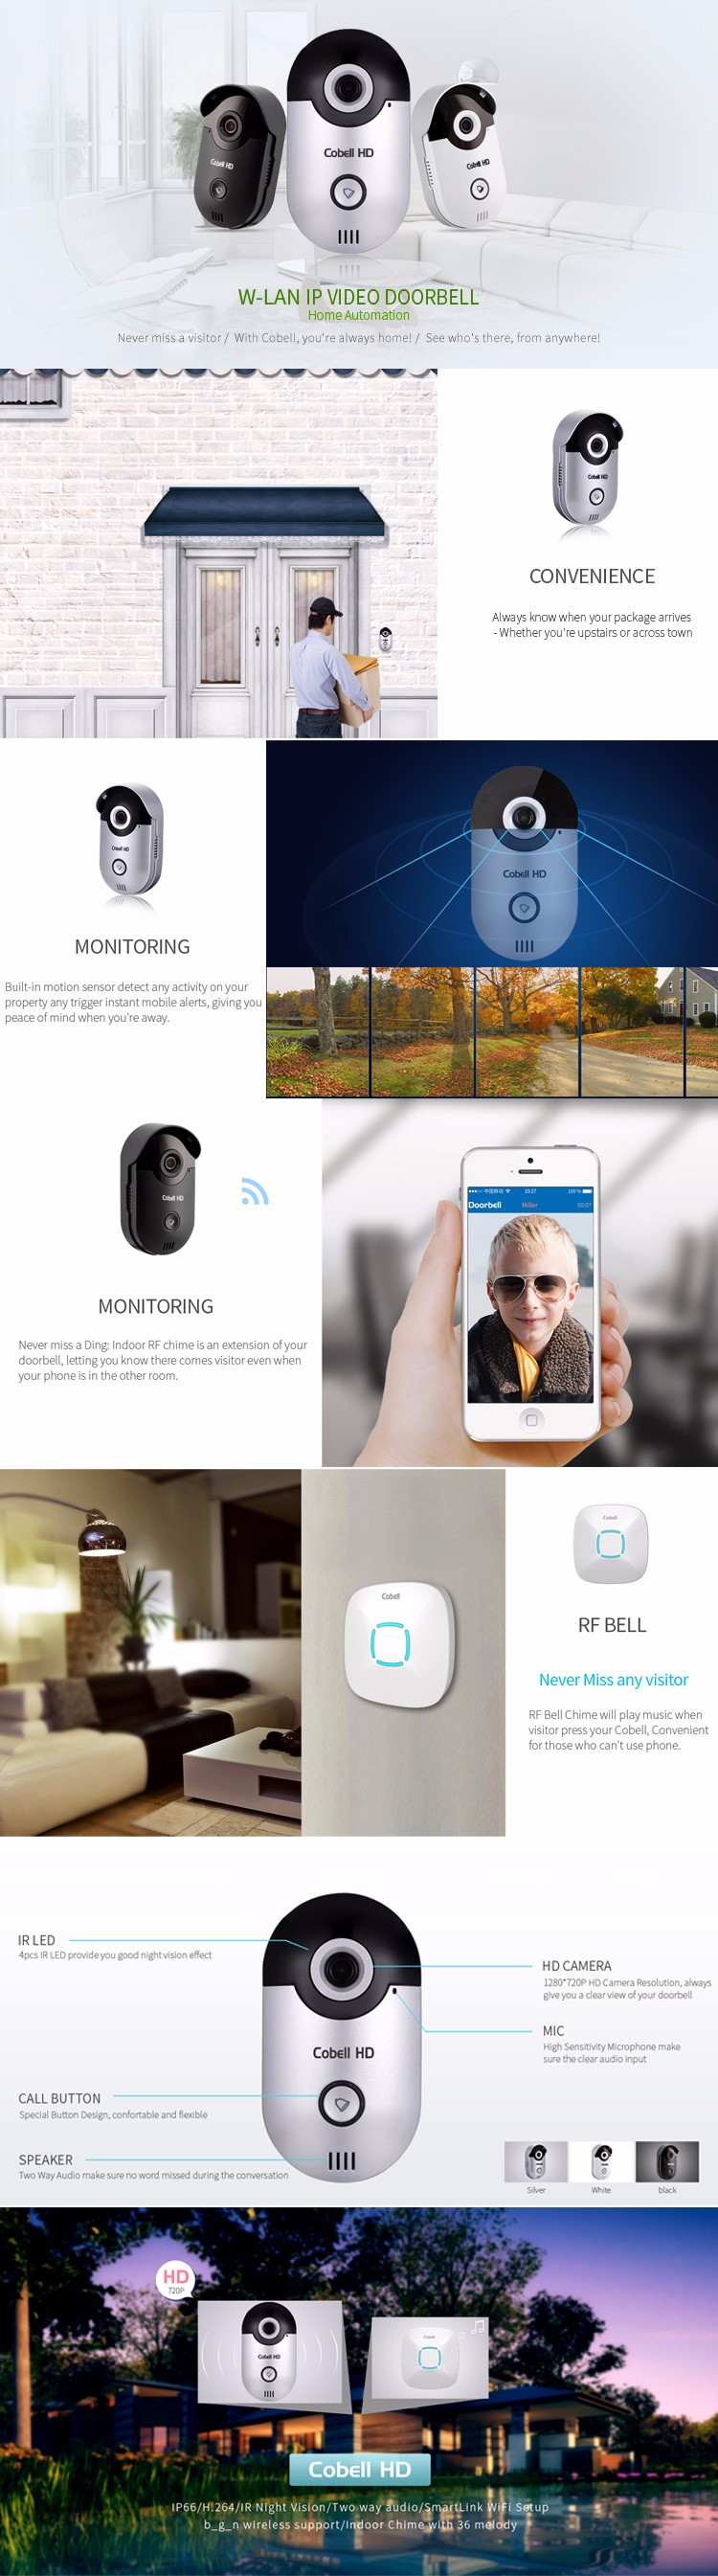 Wifi smart door phone, home security system 720p ring video doorbell